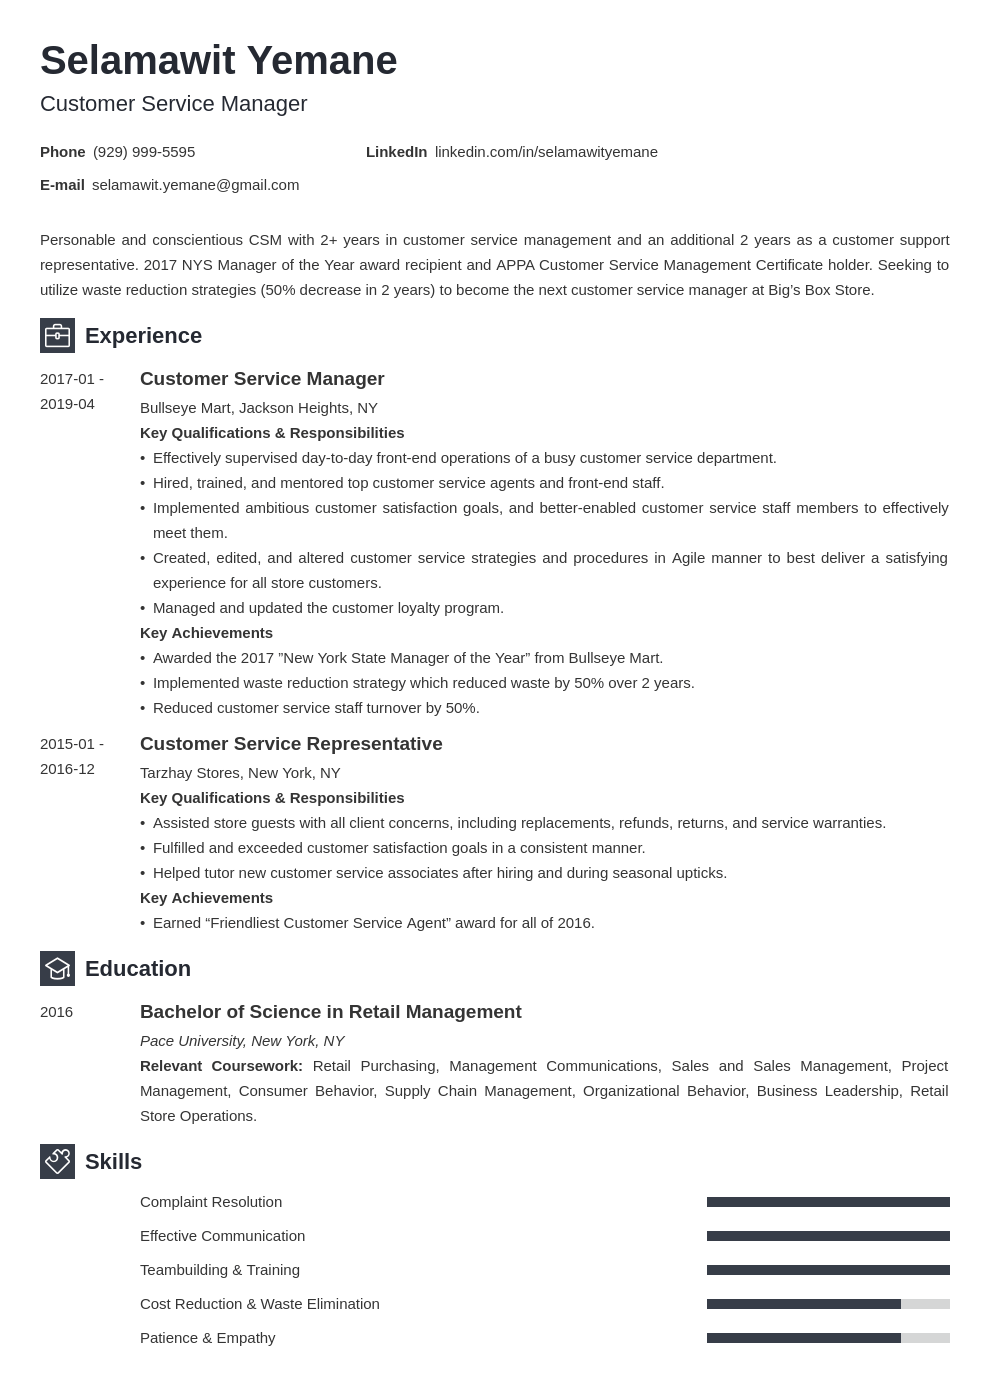 Makeup Artist Resume Sample for 2020 [Guide & Examples]